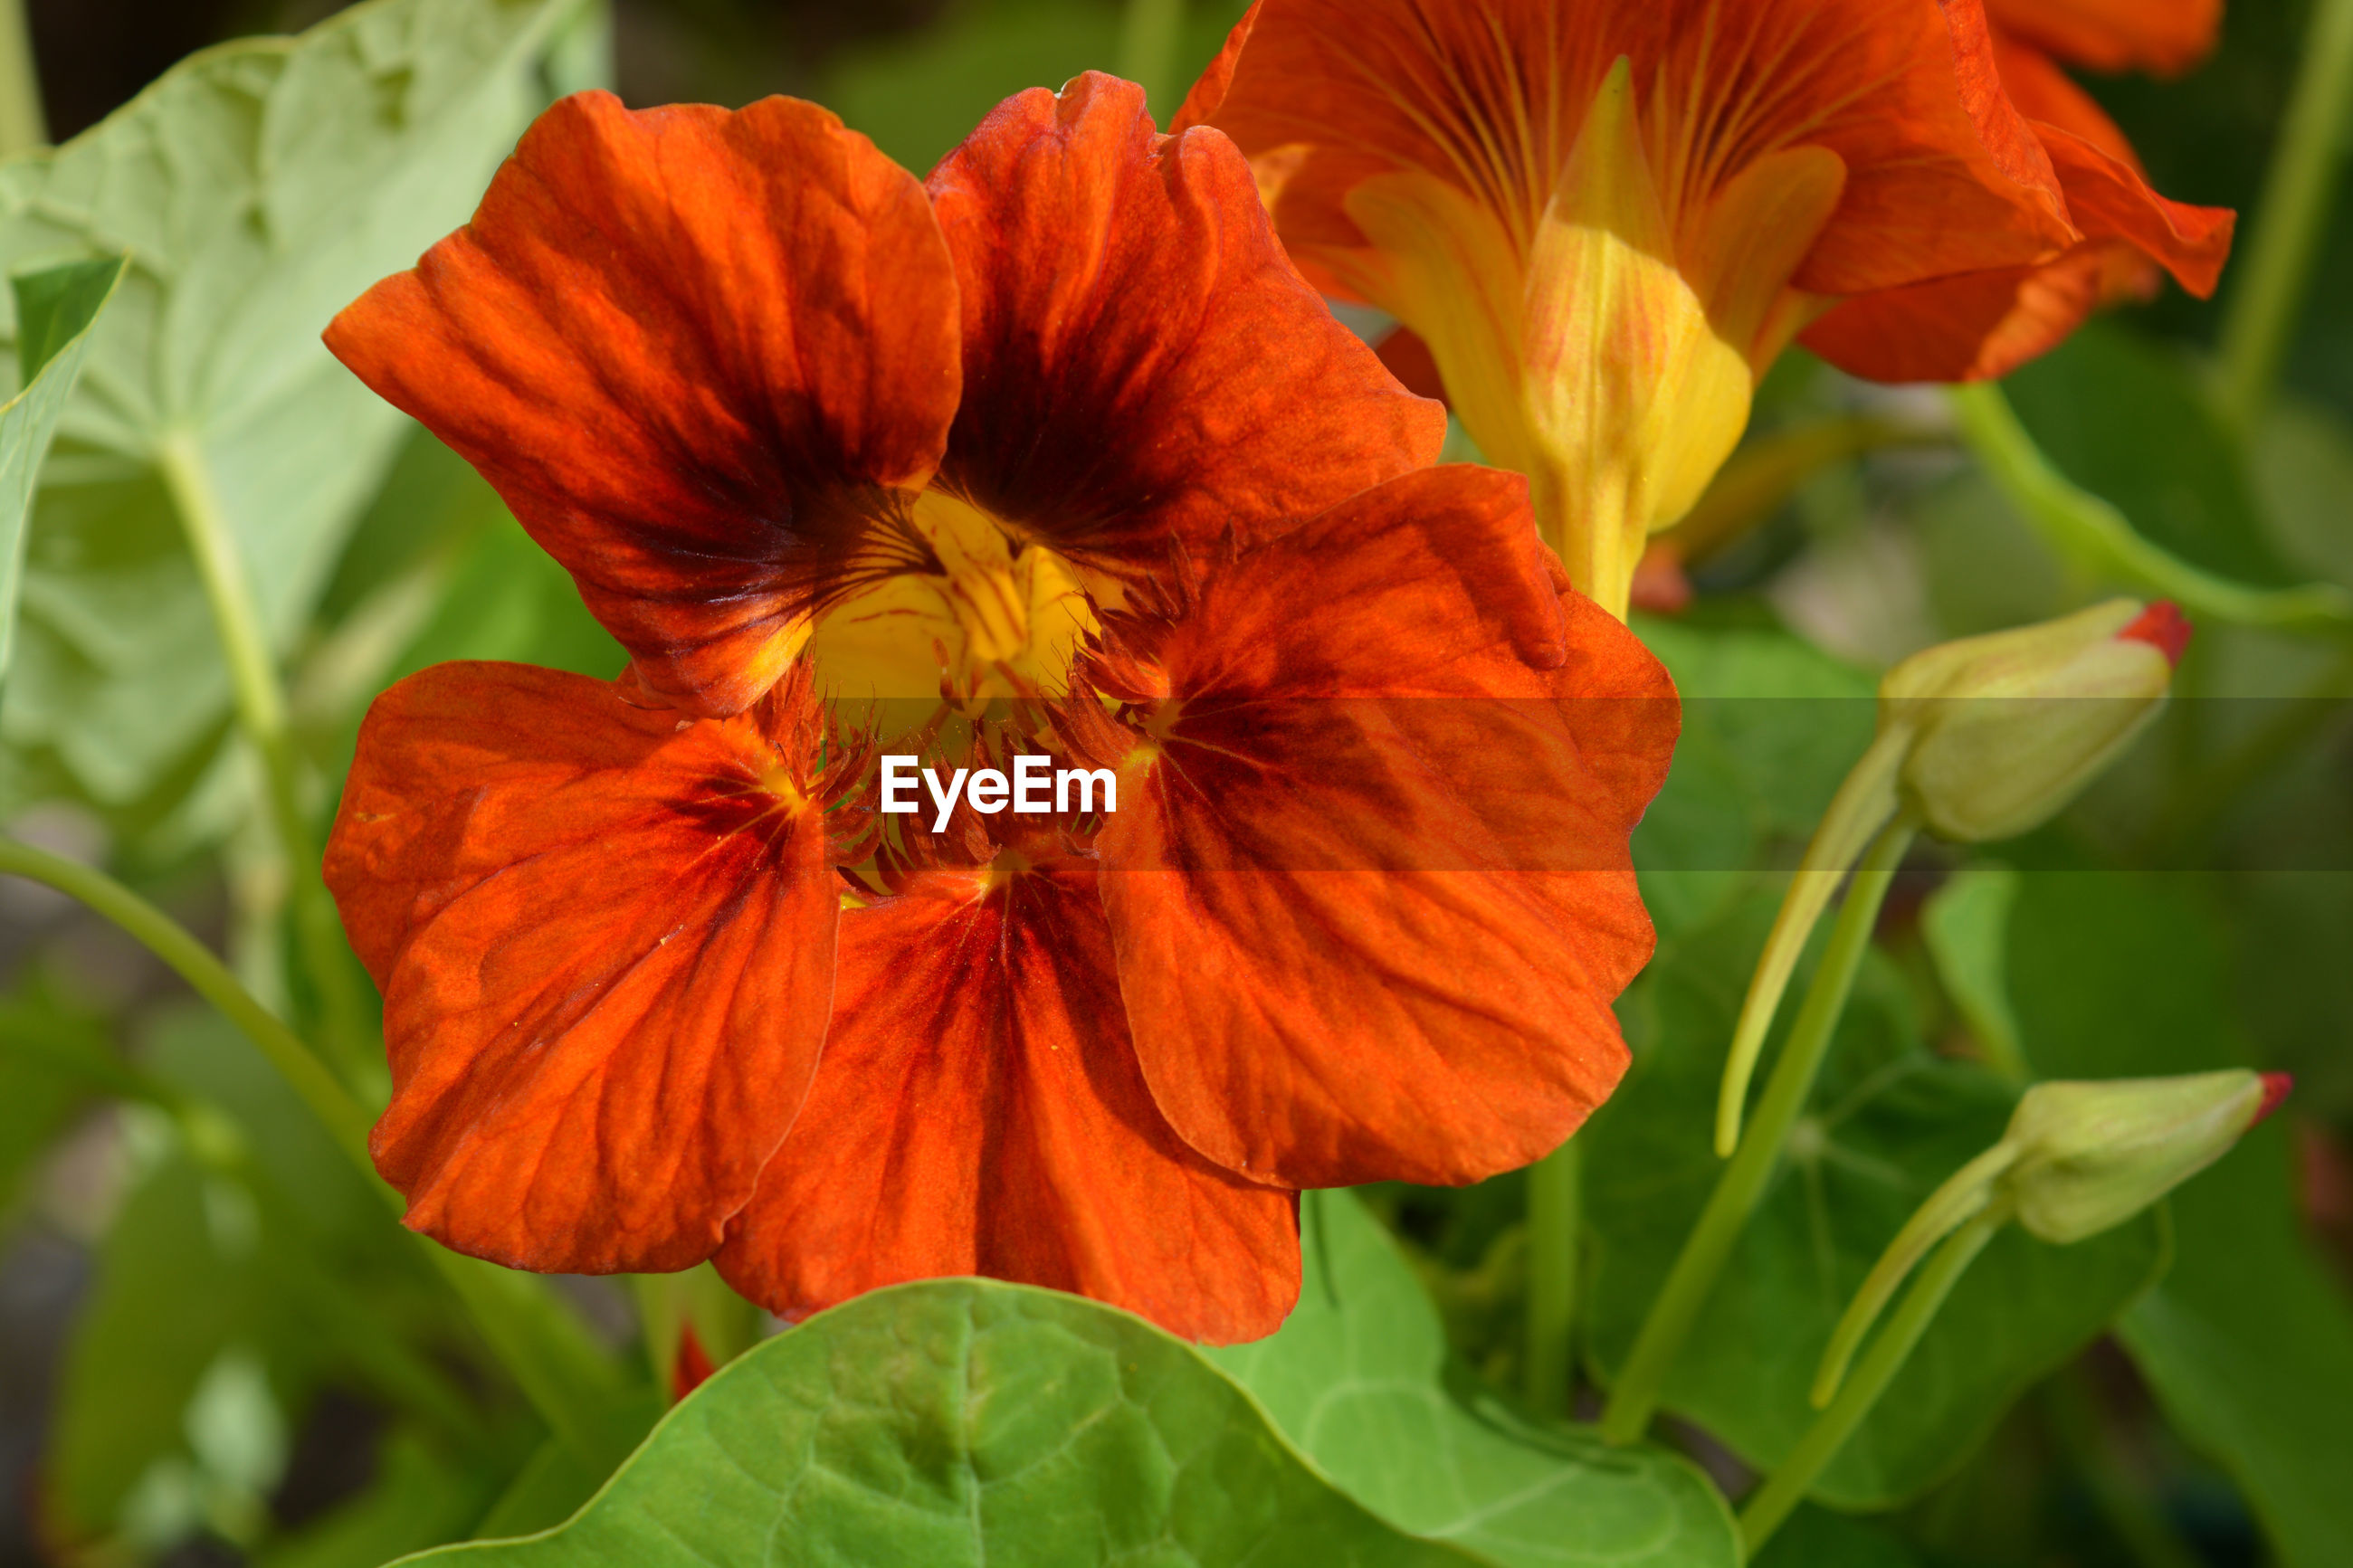 CLOSE-UP OF RED ORANGE FLOWER AGAINST PLANTS